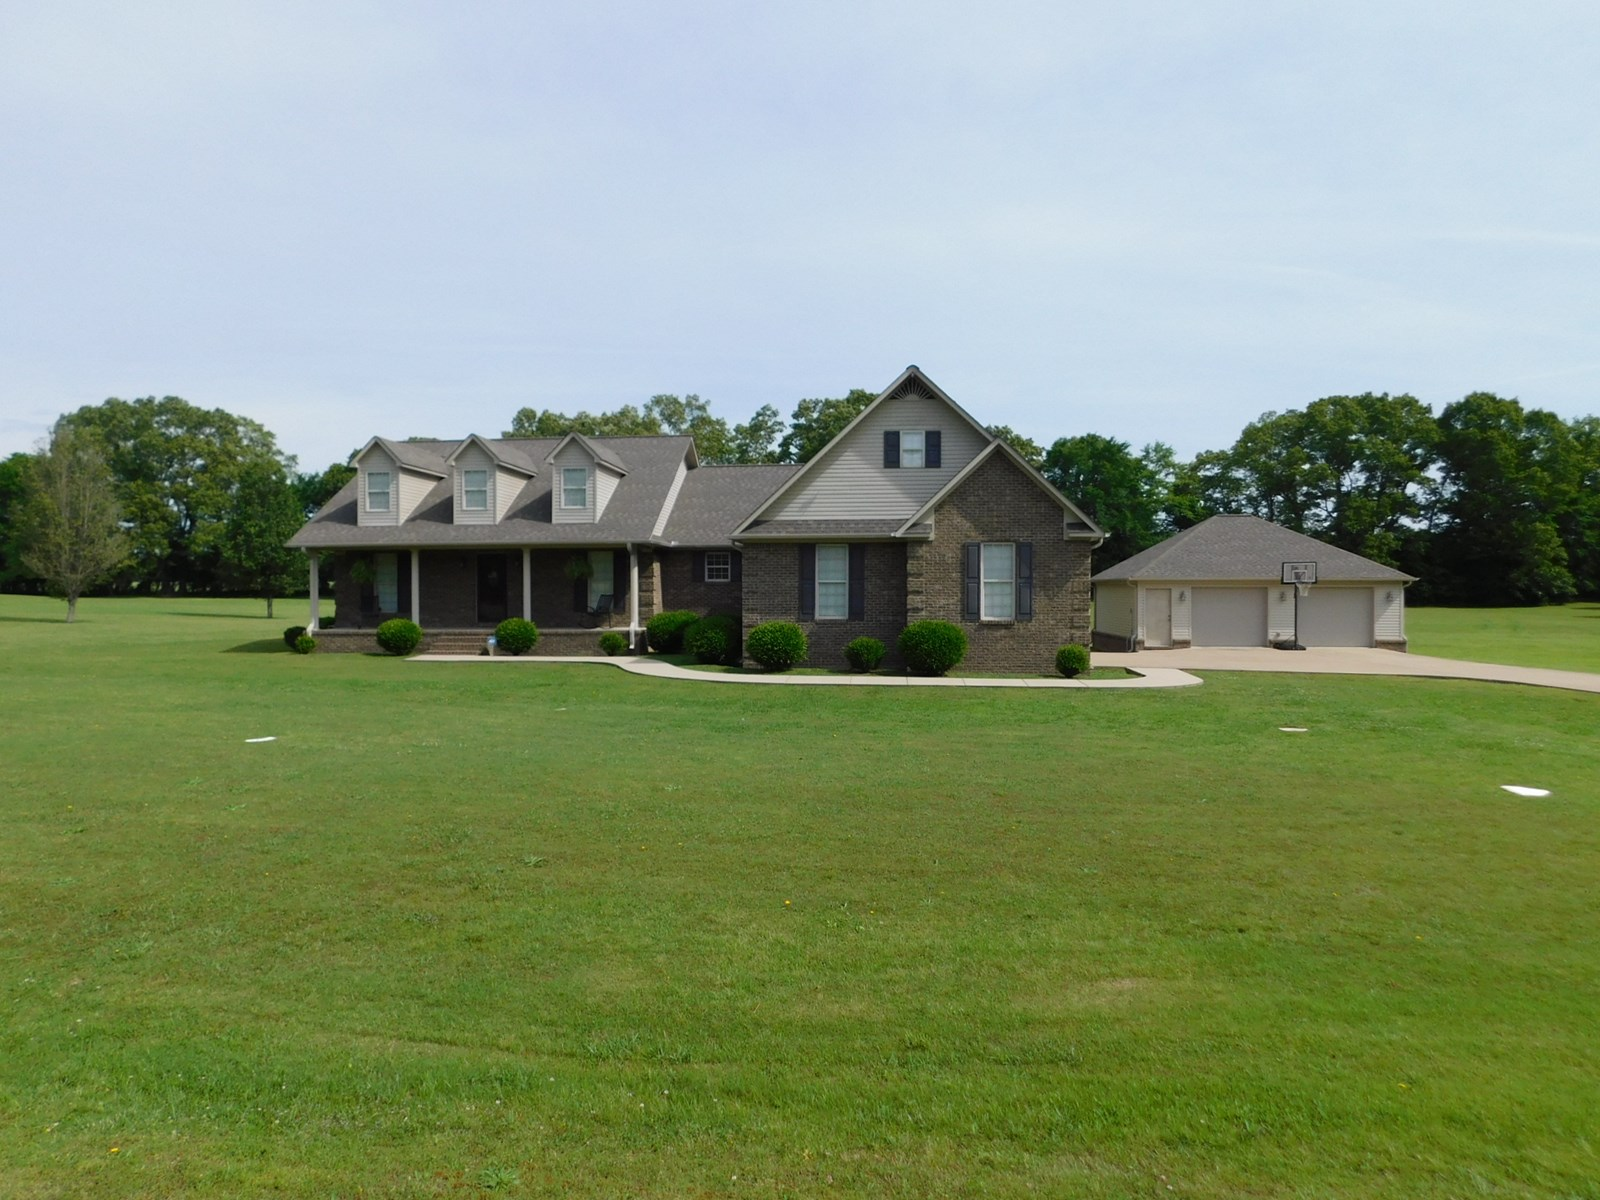 4 BEDROOM HOME FOR SALE WITH POOL & SHOP